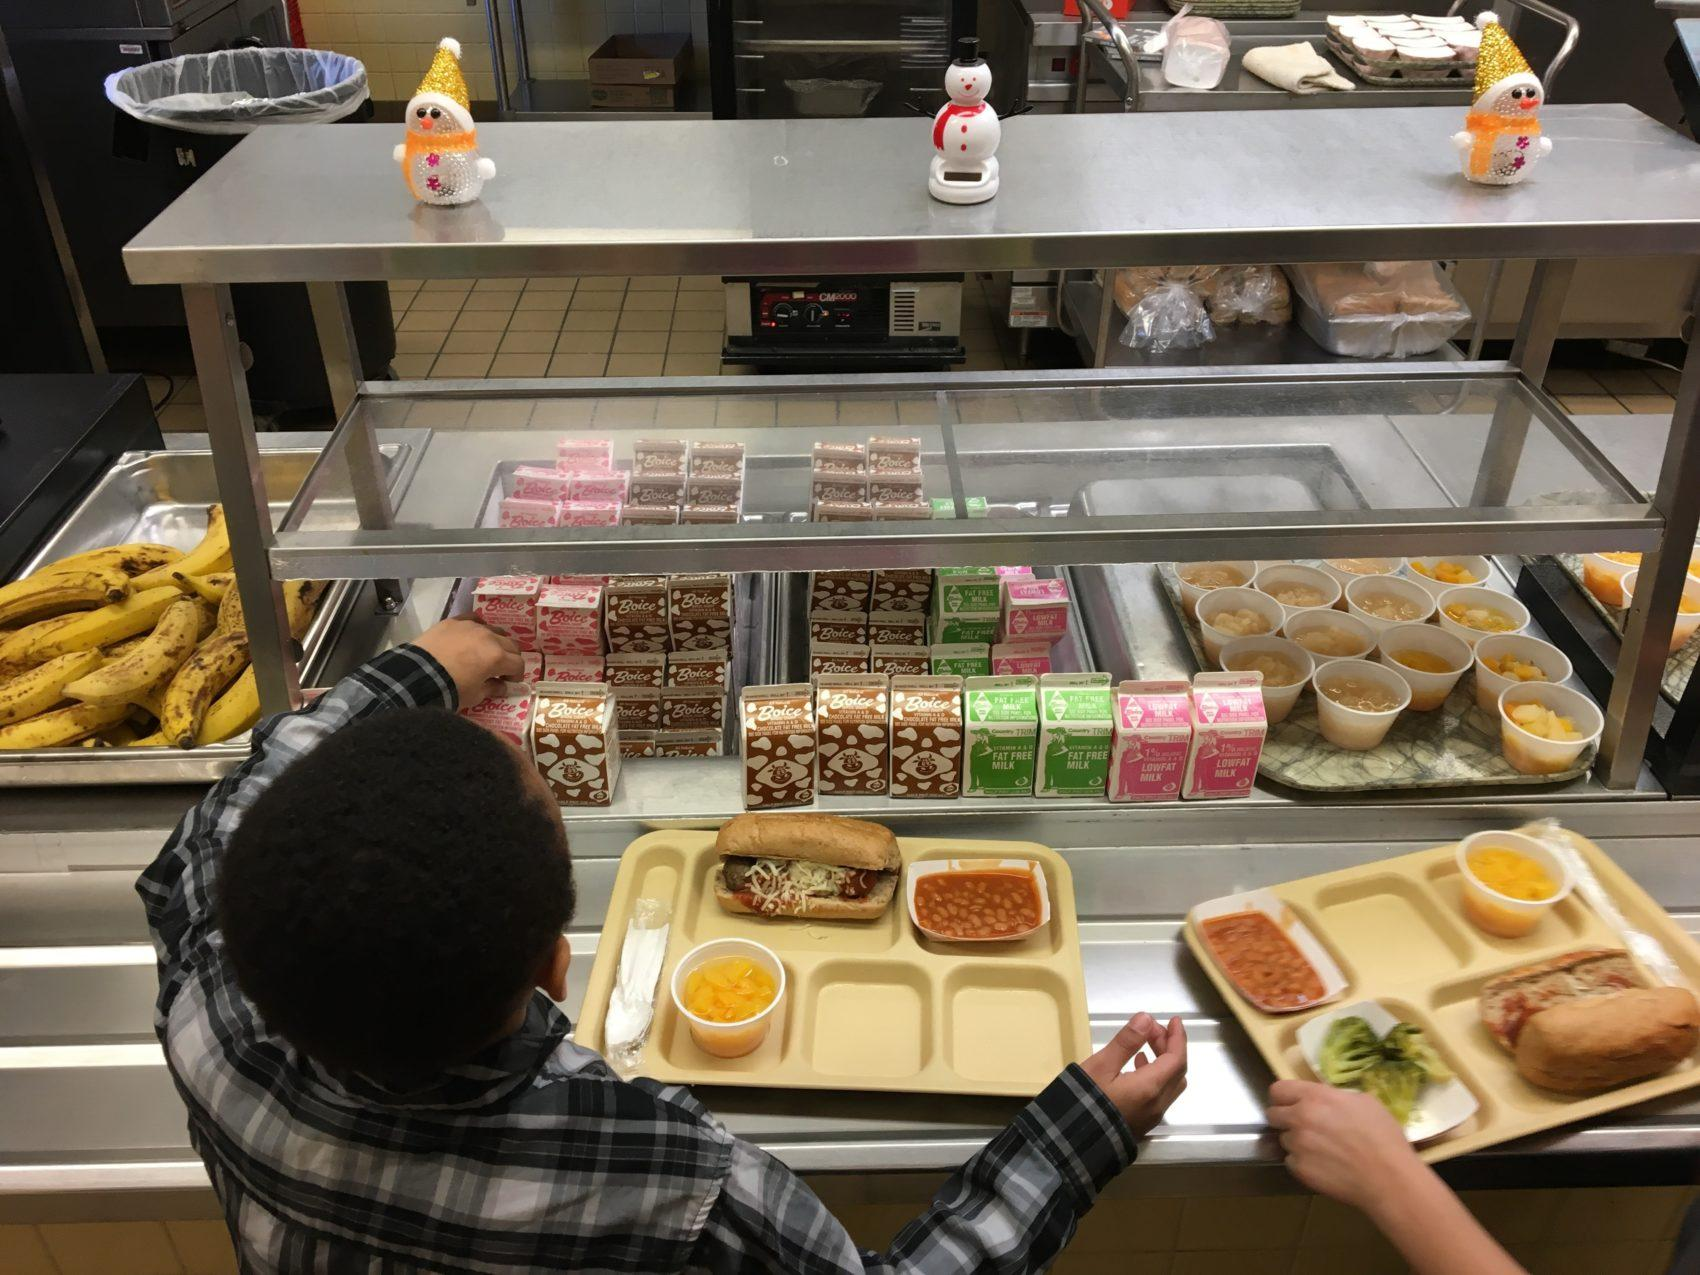 States Sue Trump Administration Over Changes To Obama-Era School Lunch Standards